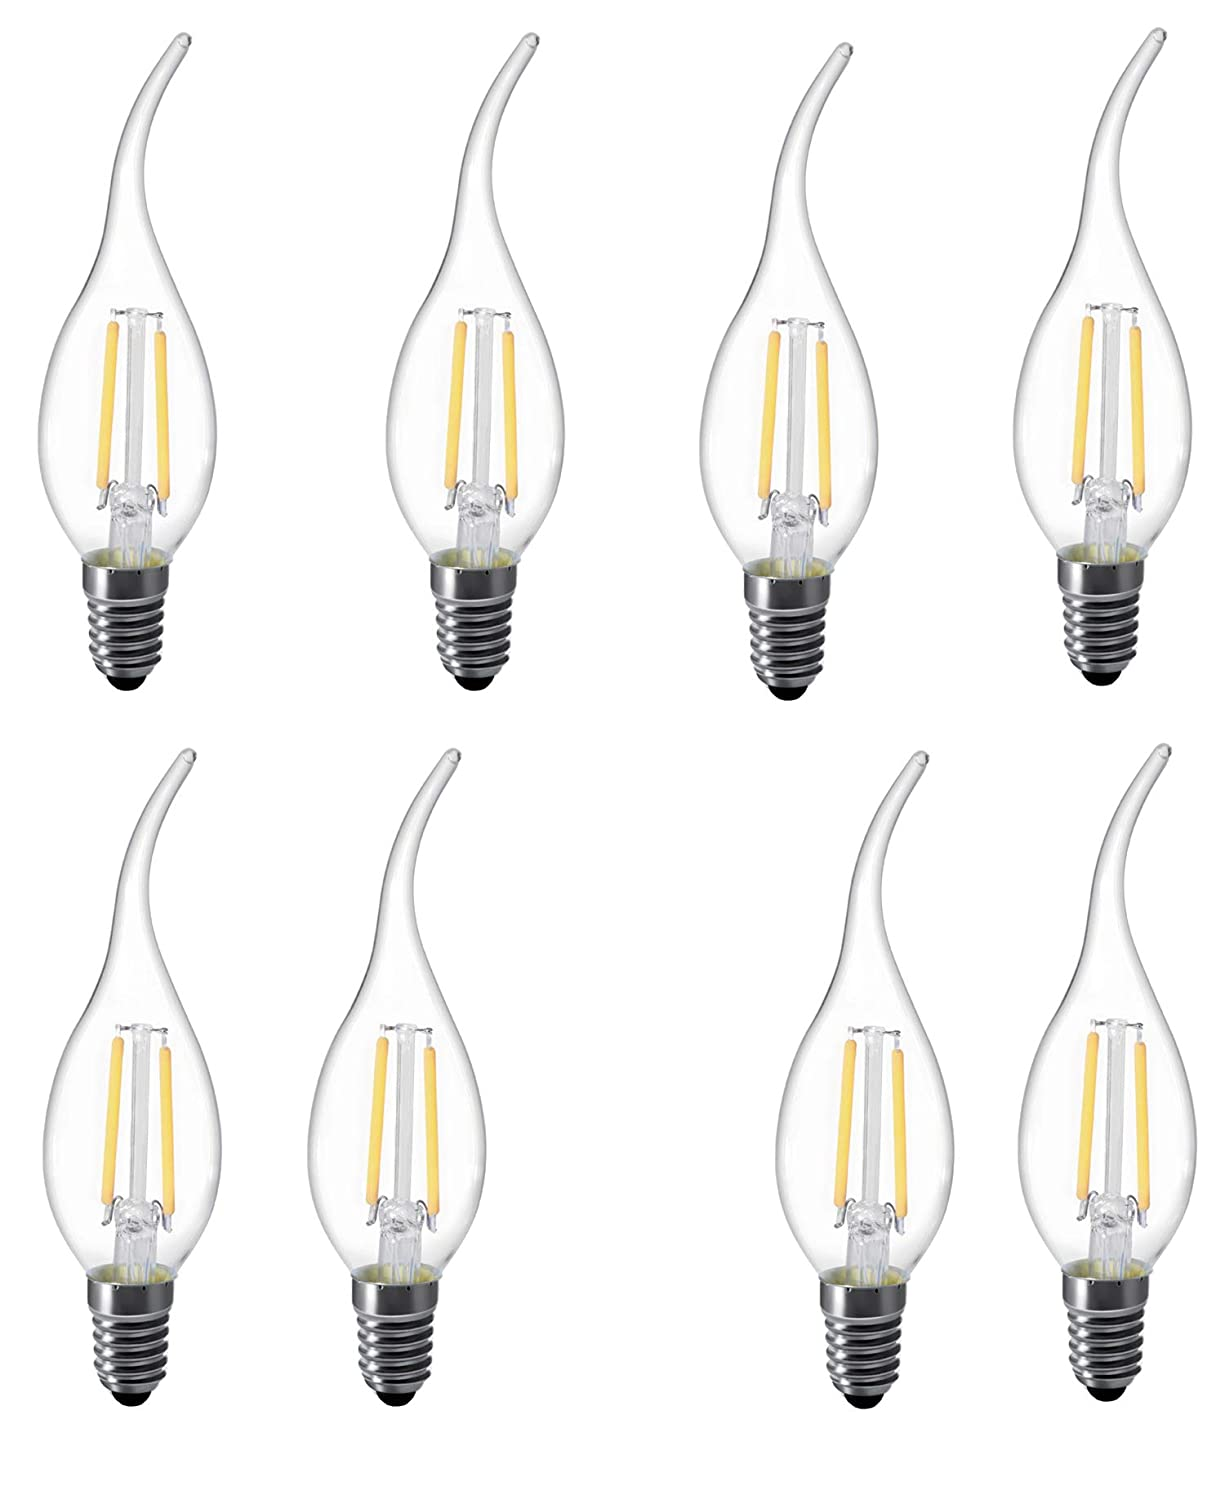 LUXON Flame tip LED Filament Candelabra Light Bulb Warm White 2700k Use in Chandeliers,Wall Sconces,and Pendant Lighting (8 pcs)